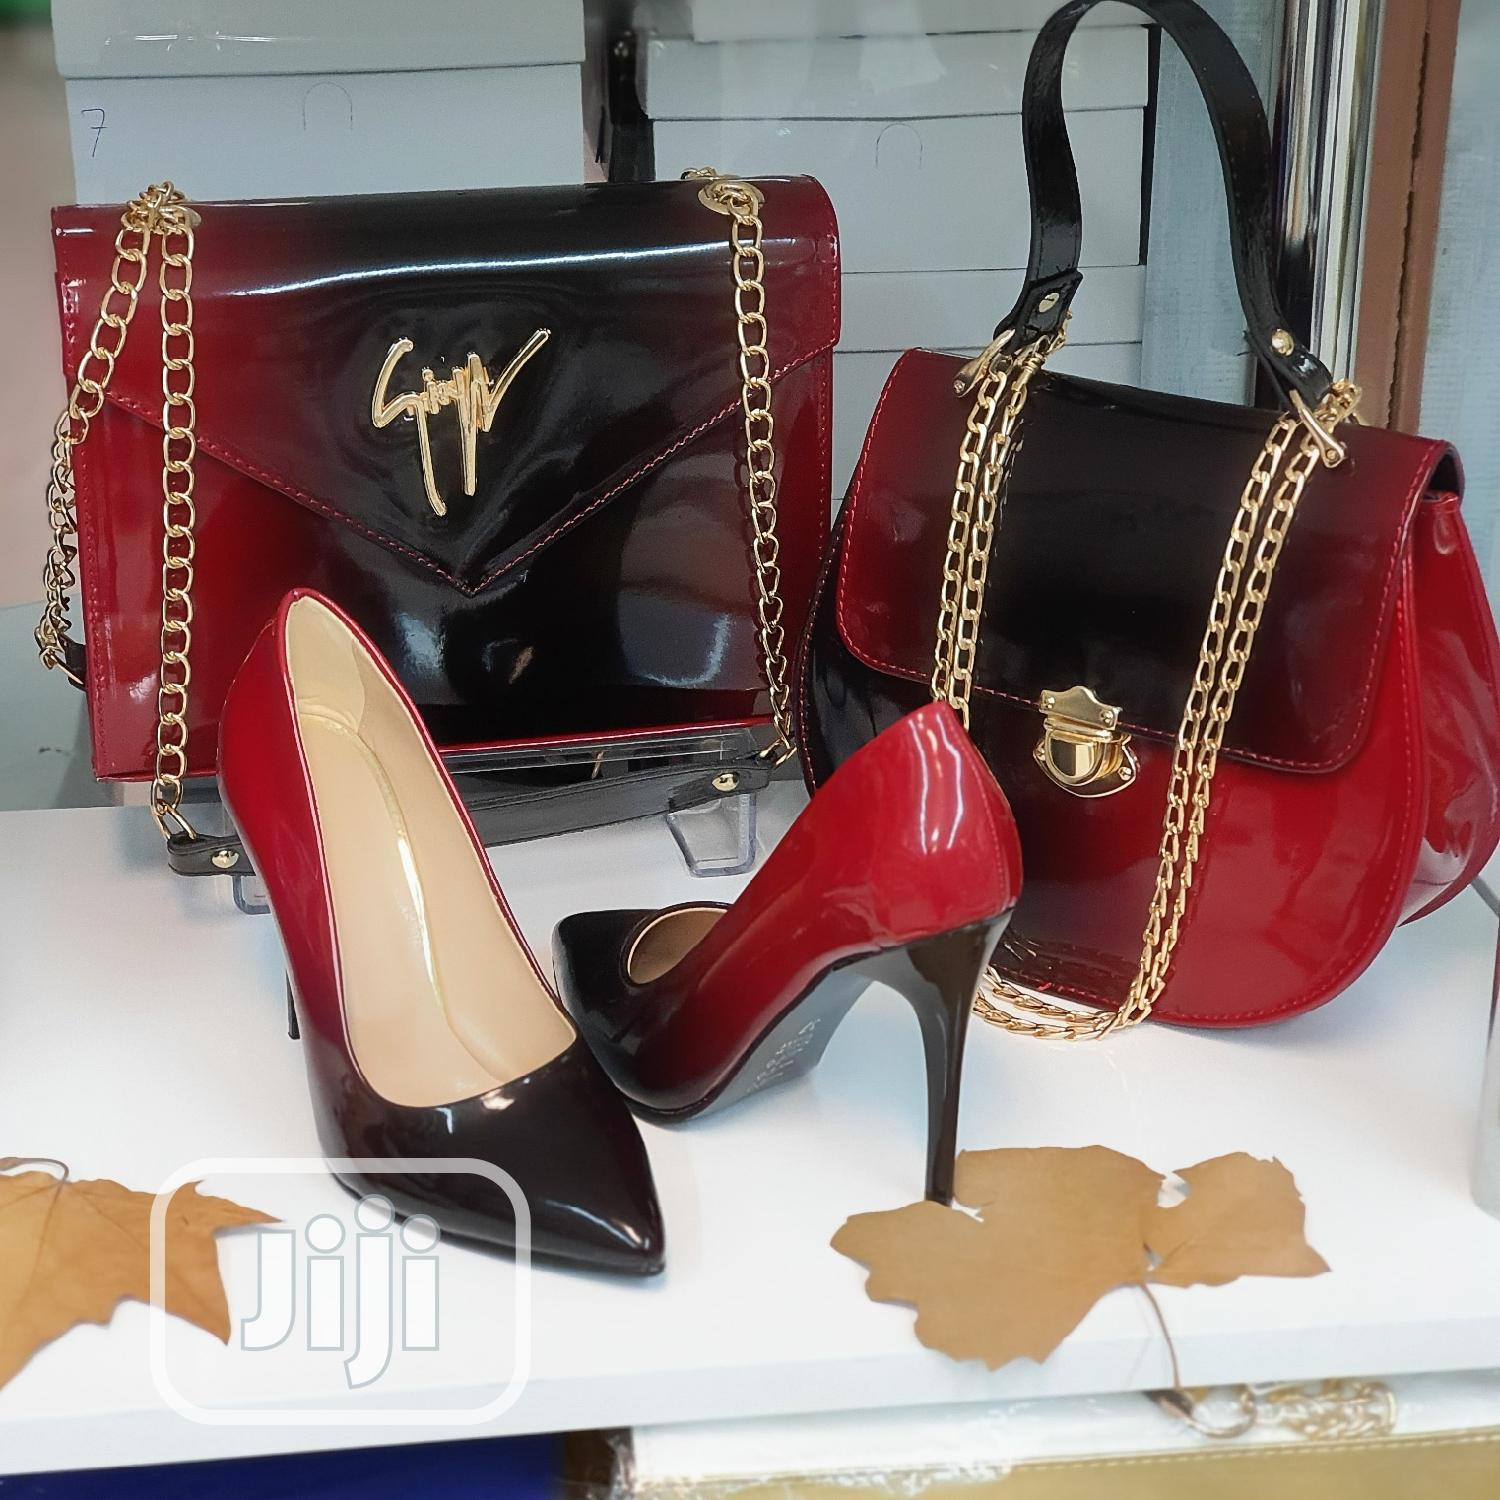 Oxblood And Nude Set(Shoe And Bag).A Lovely Set